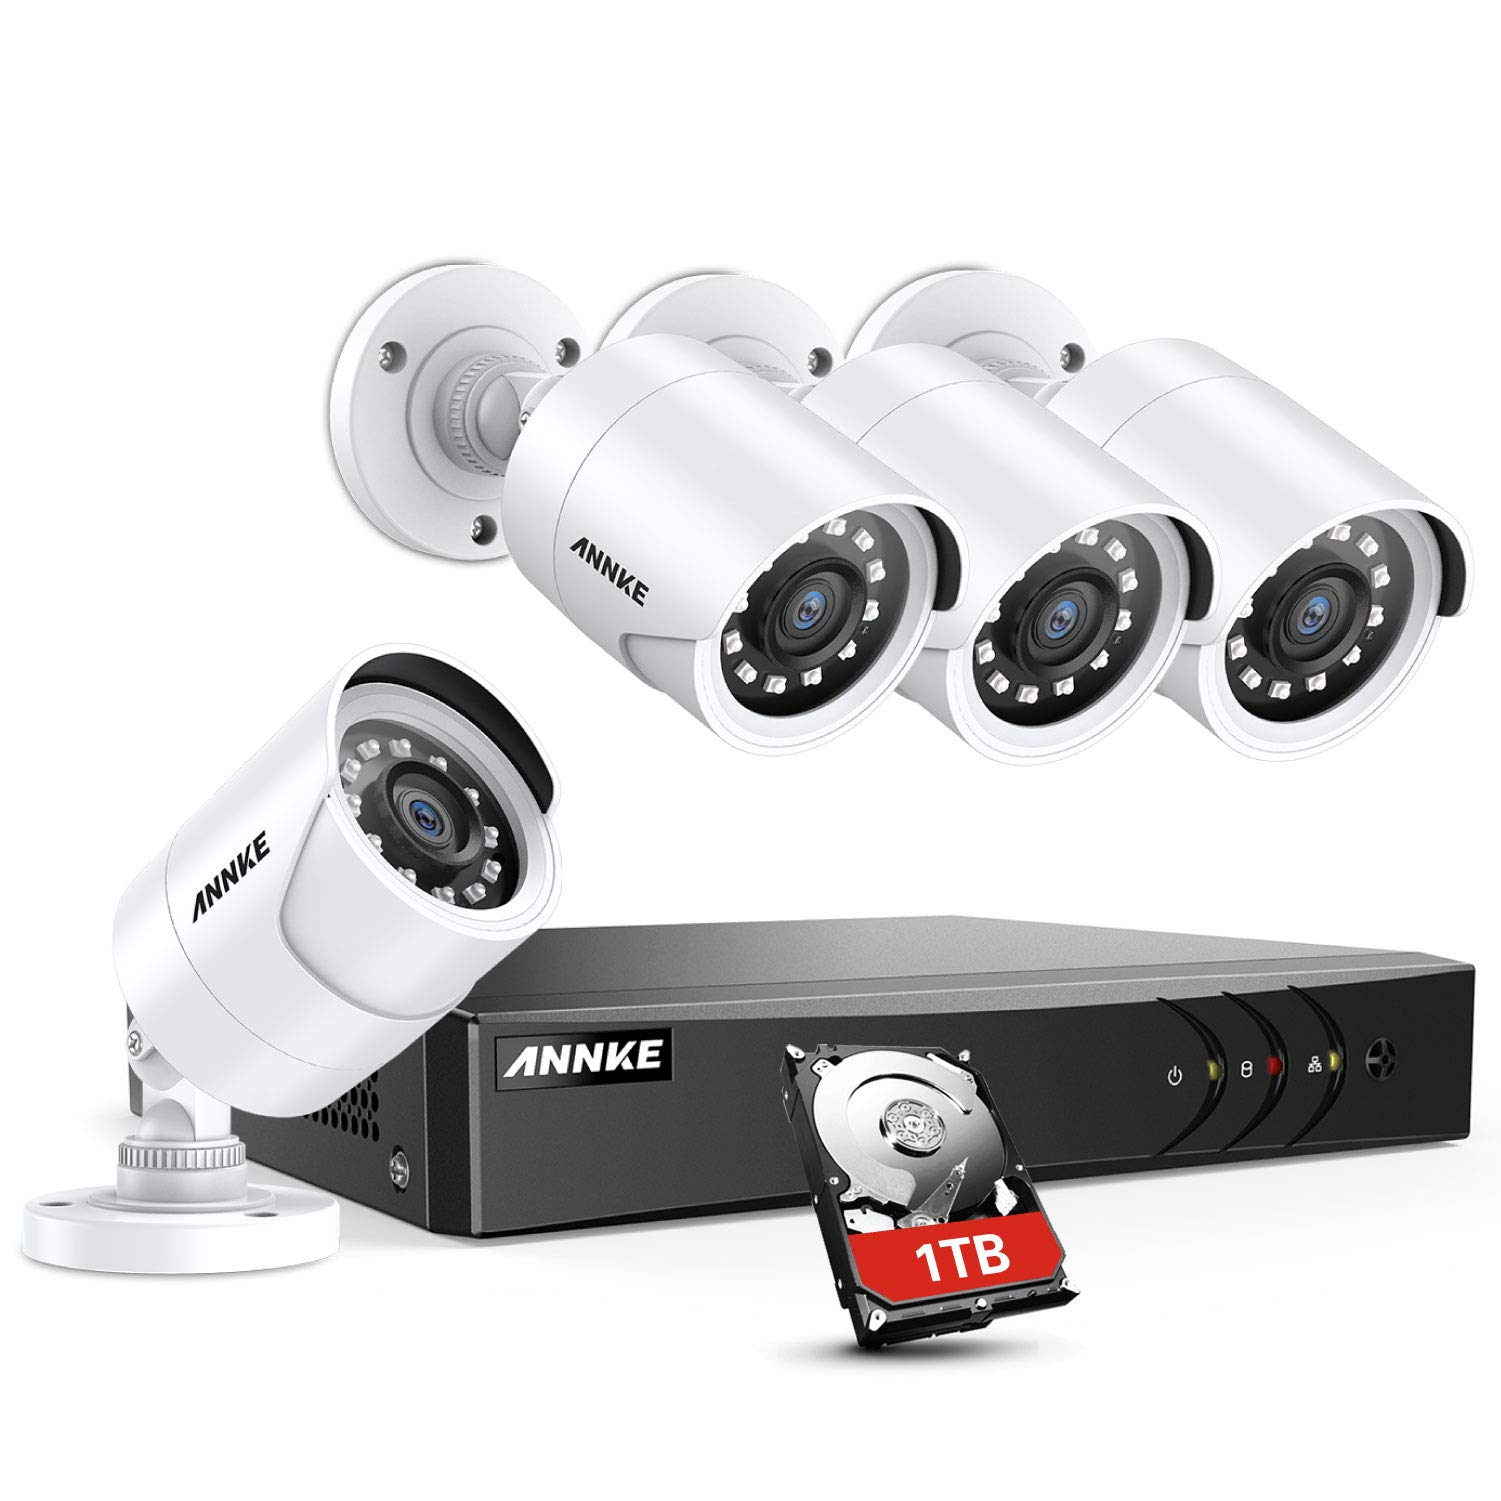 ANNKE 8 Channel Security Camera System 5-in-1 1080P lite H.264+ Wired DVR with 1TB Surveillance Hard Disk Drive and 4X 1080P HD Weatherproof Bullet CCTV Cameras with IR-cut Night Vision LEDs by ANNKE